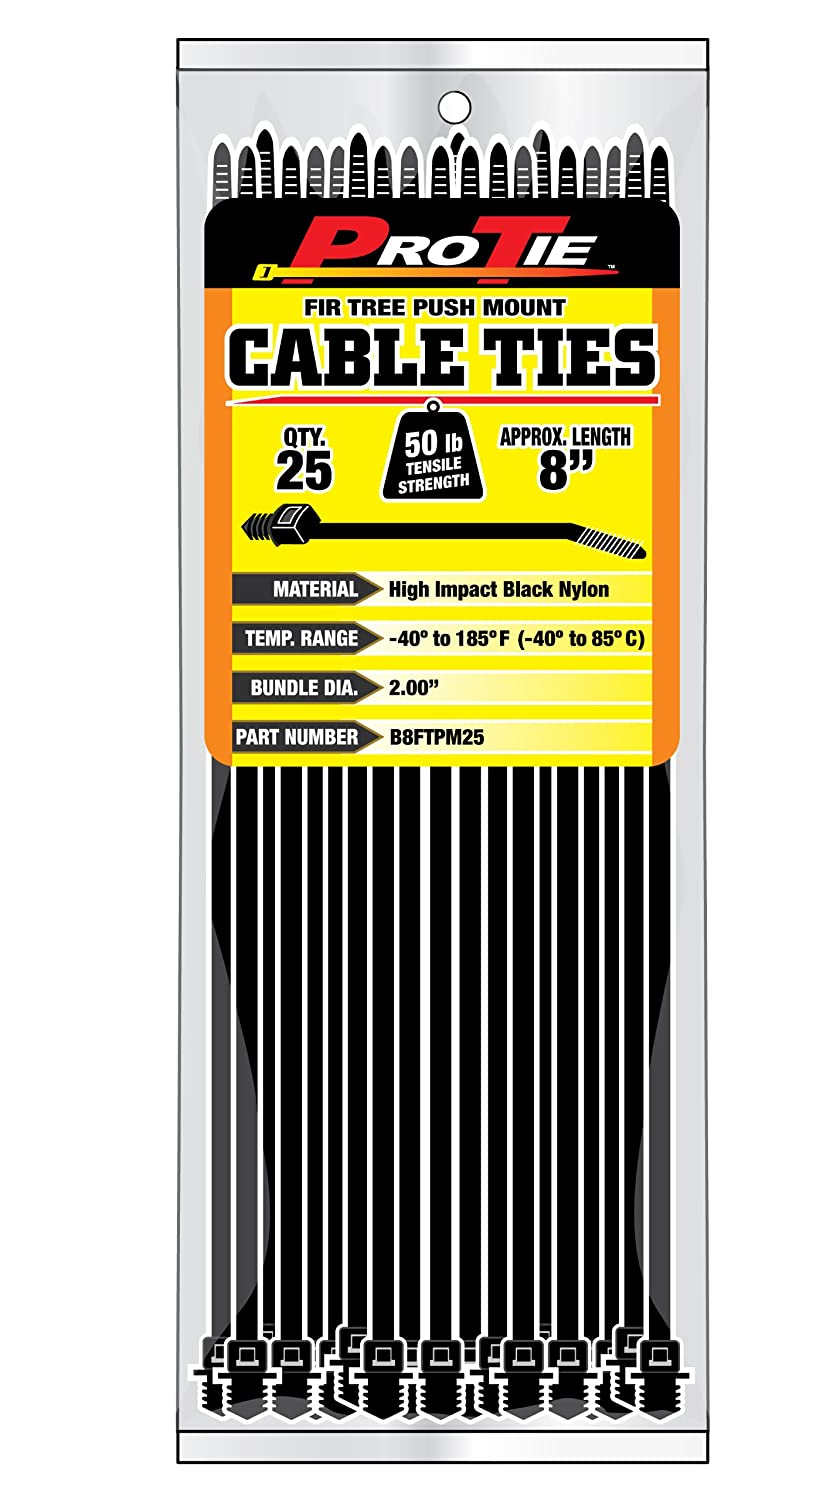 Pro Tie B8ftpm100 8 Inch Fir Tree Push Mount Cable Uv Black Wiring Harness Zip Ties Nylon 100 Pack Down